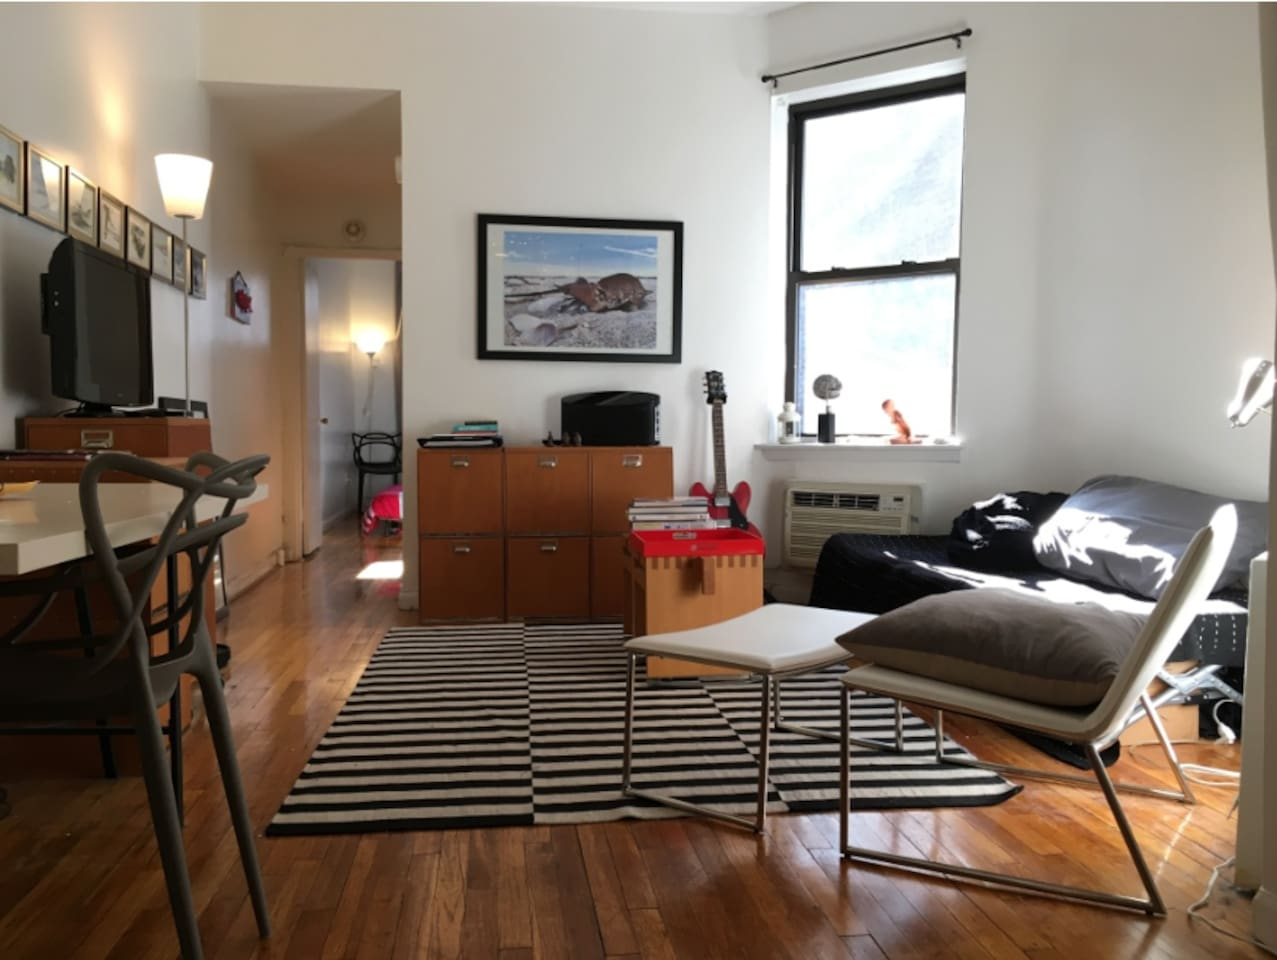 Upper East Side, 86th Street subway station. Bed room with king size bed, living area with apple-TV, fully equipped Eat-In kitchen. Charming, quiet & spacious.